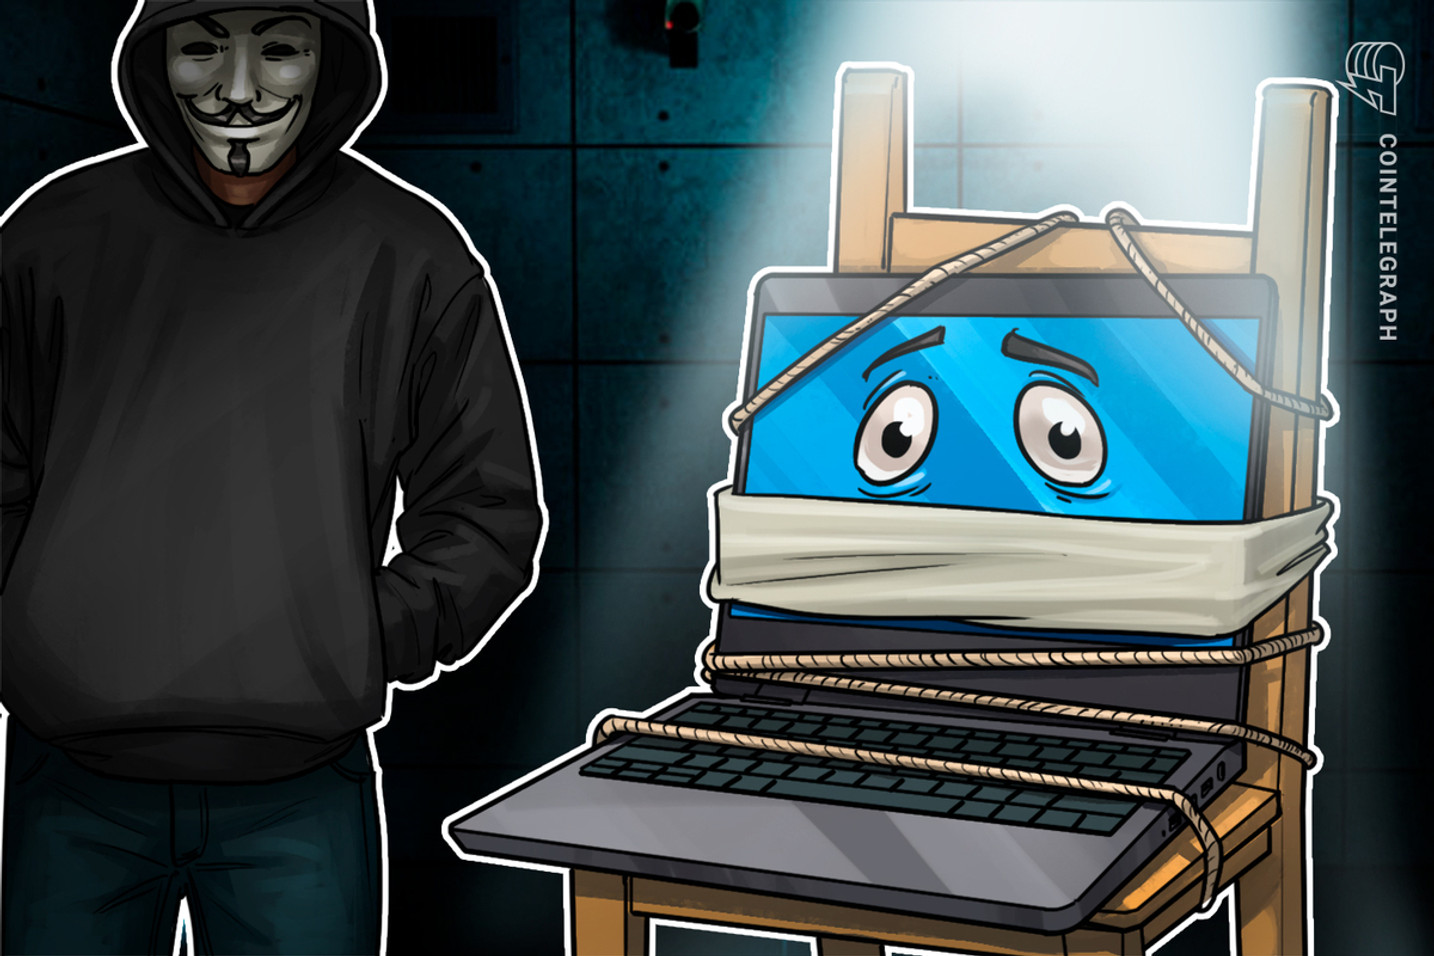 UK Company Paid $2.3M Ransom in Bitcoin to Cybercriminals